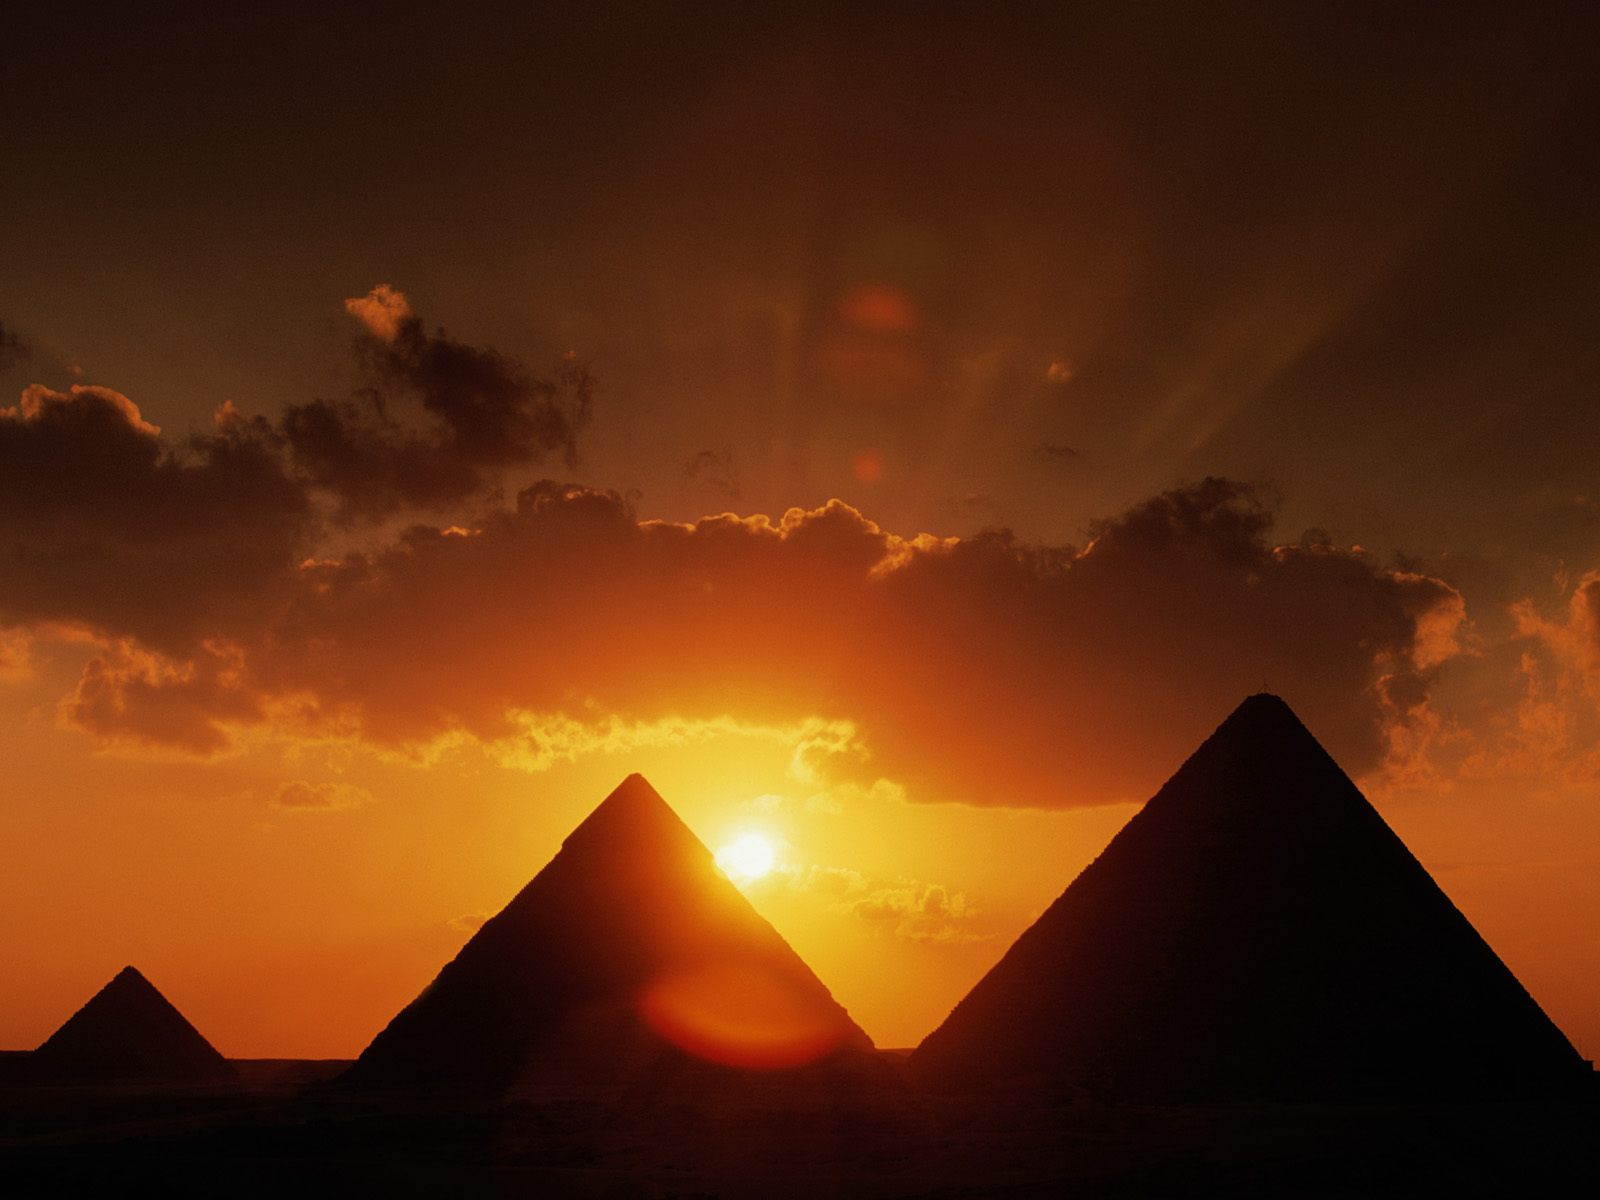 They found the pyramids by using satellites that orbit Earth. These ...